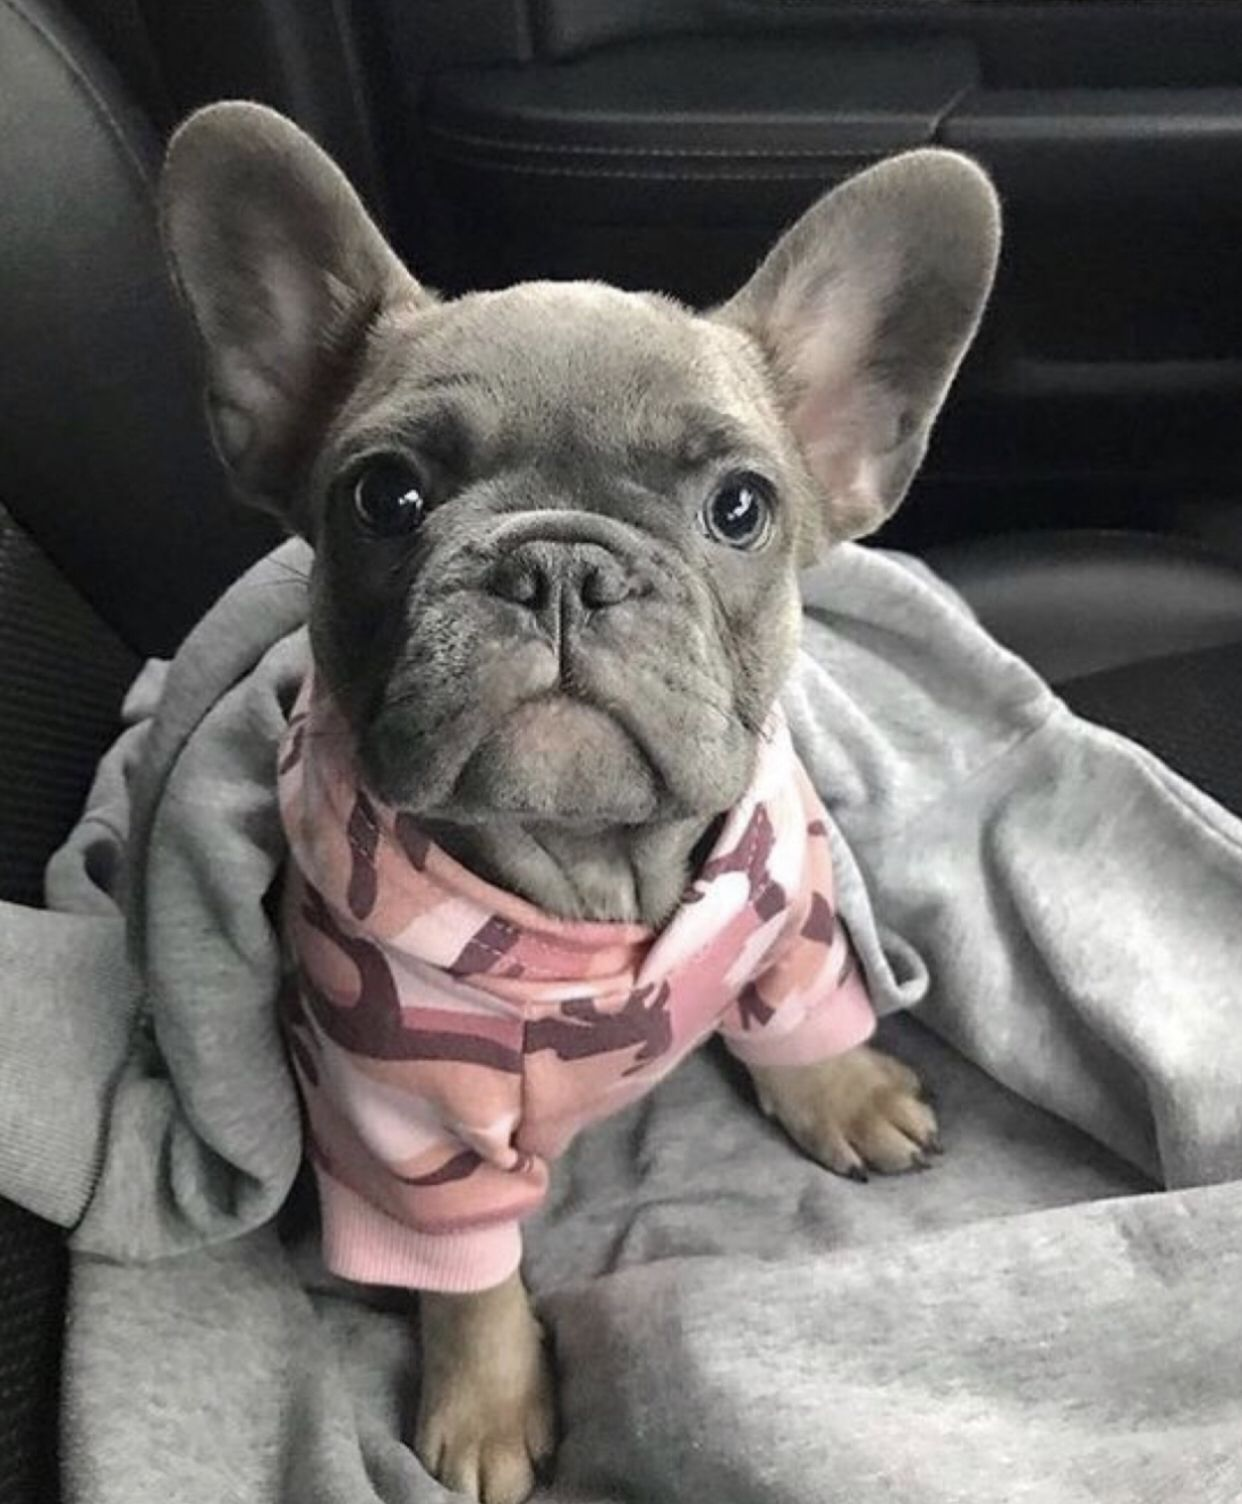 My wholeeee heart ♥️ Blue french bulldog puppies